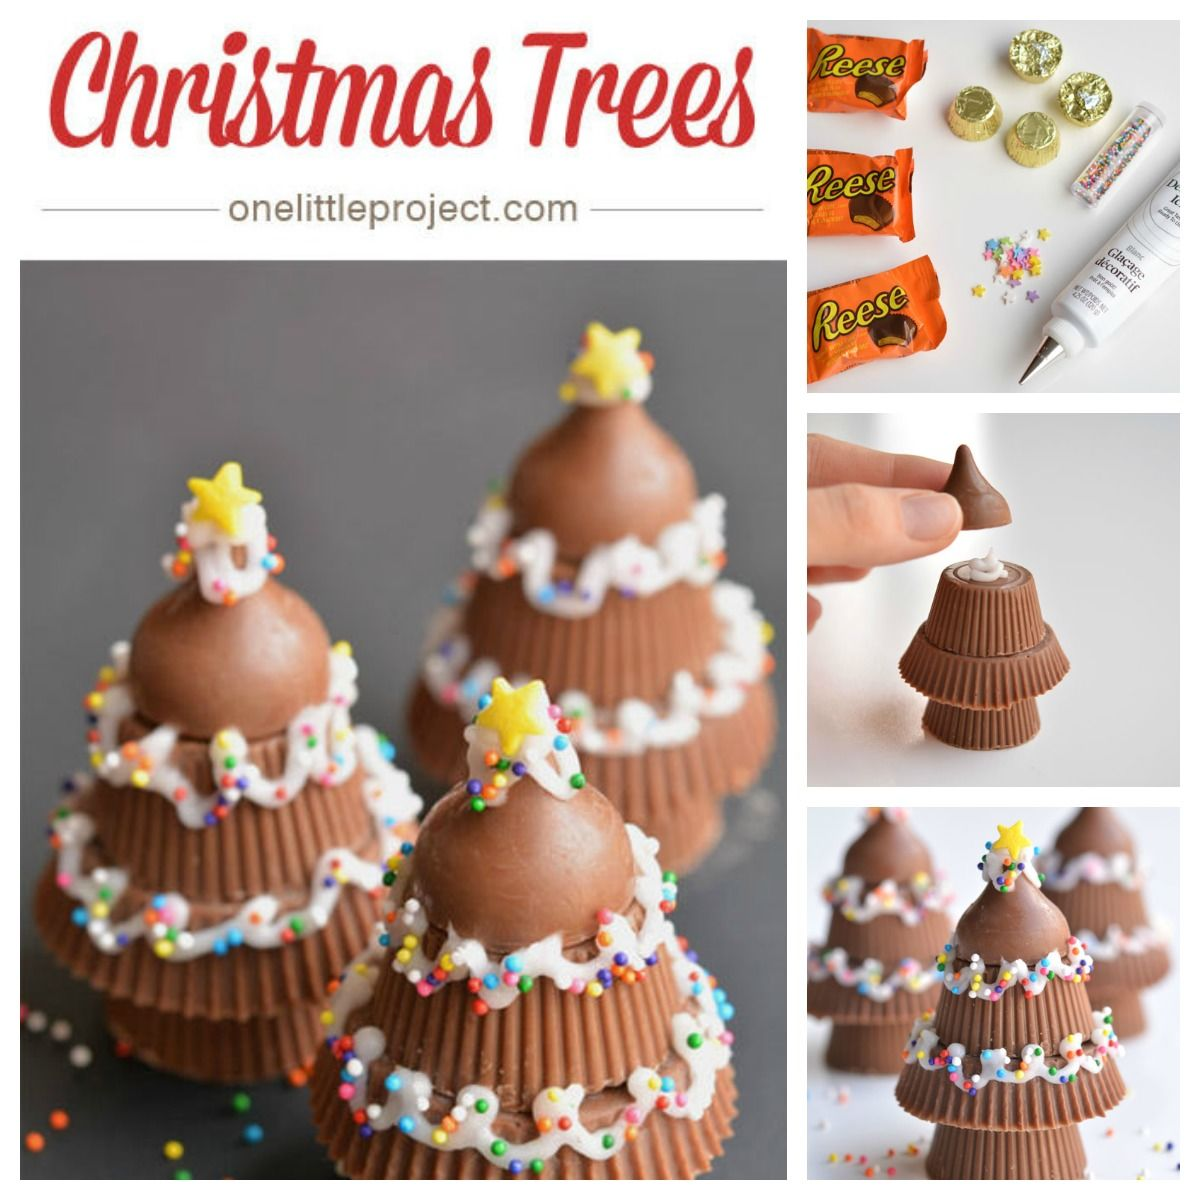 DIY Peanut Butter Christmas Trees Pictures, Photos, and Images for ...